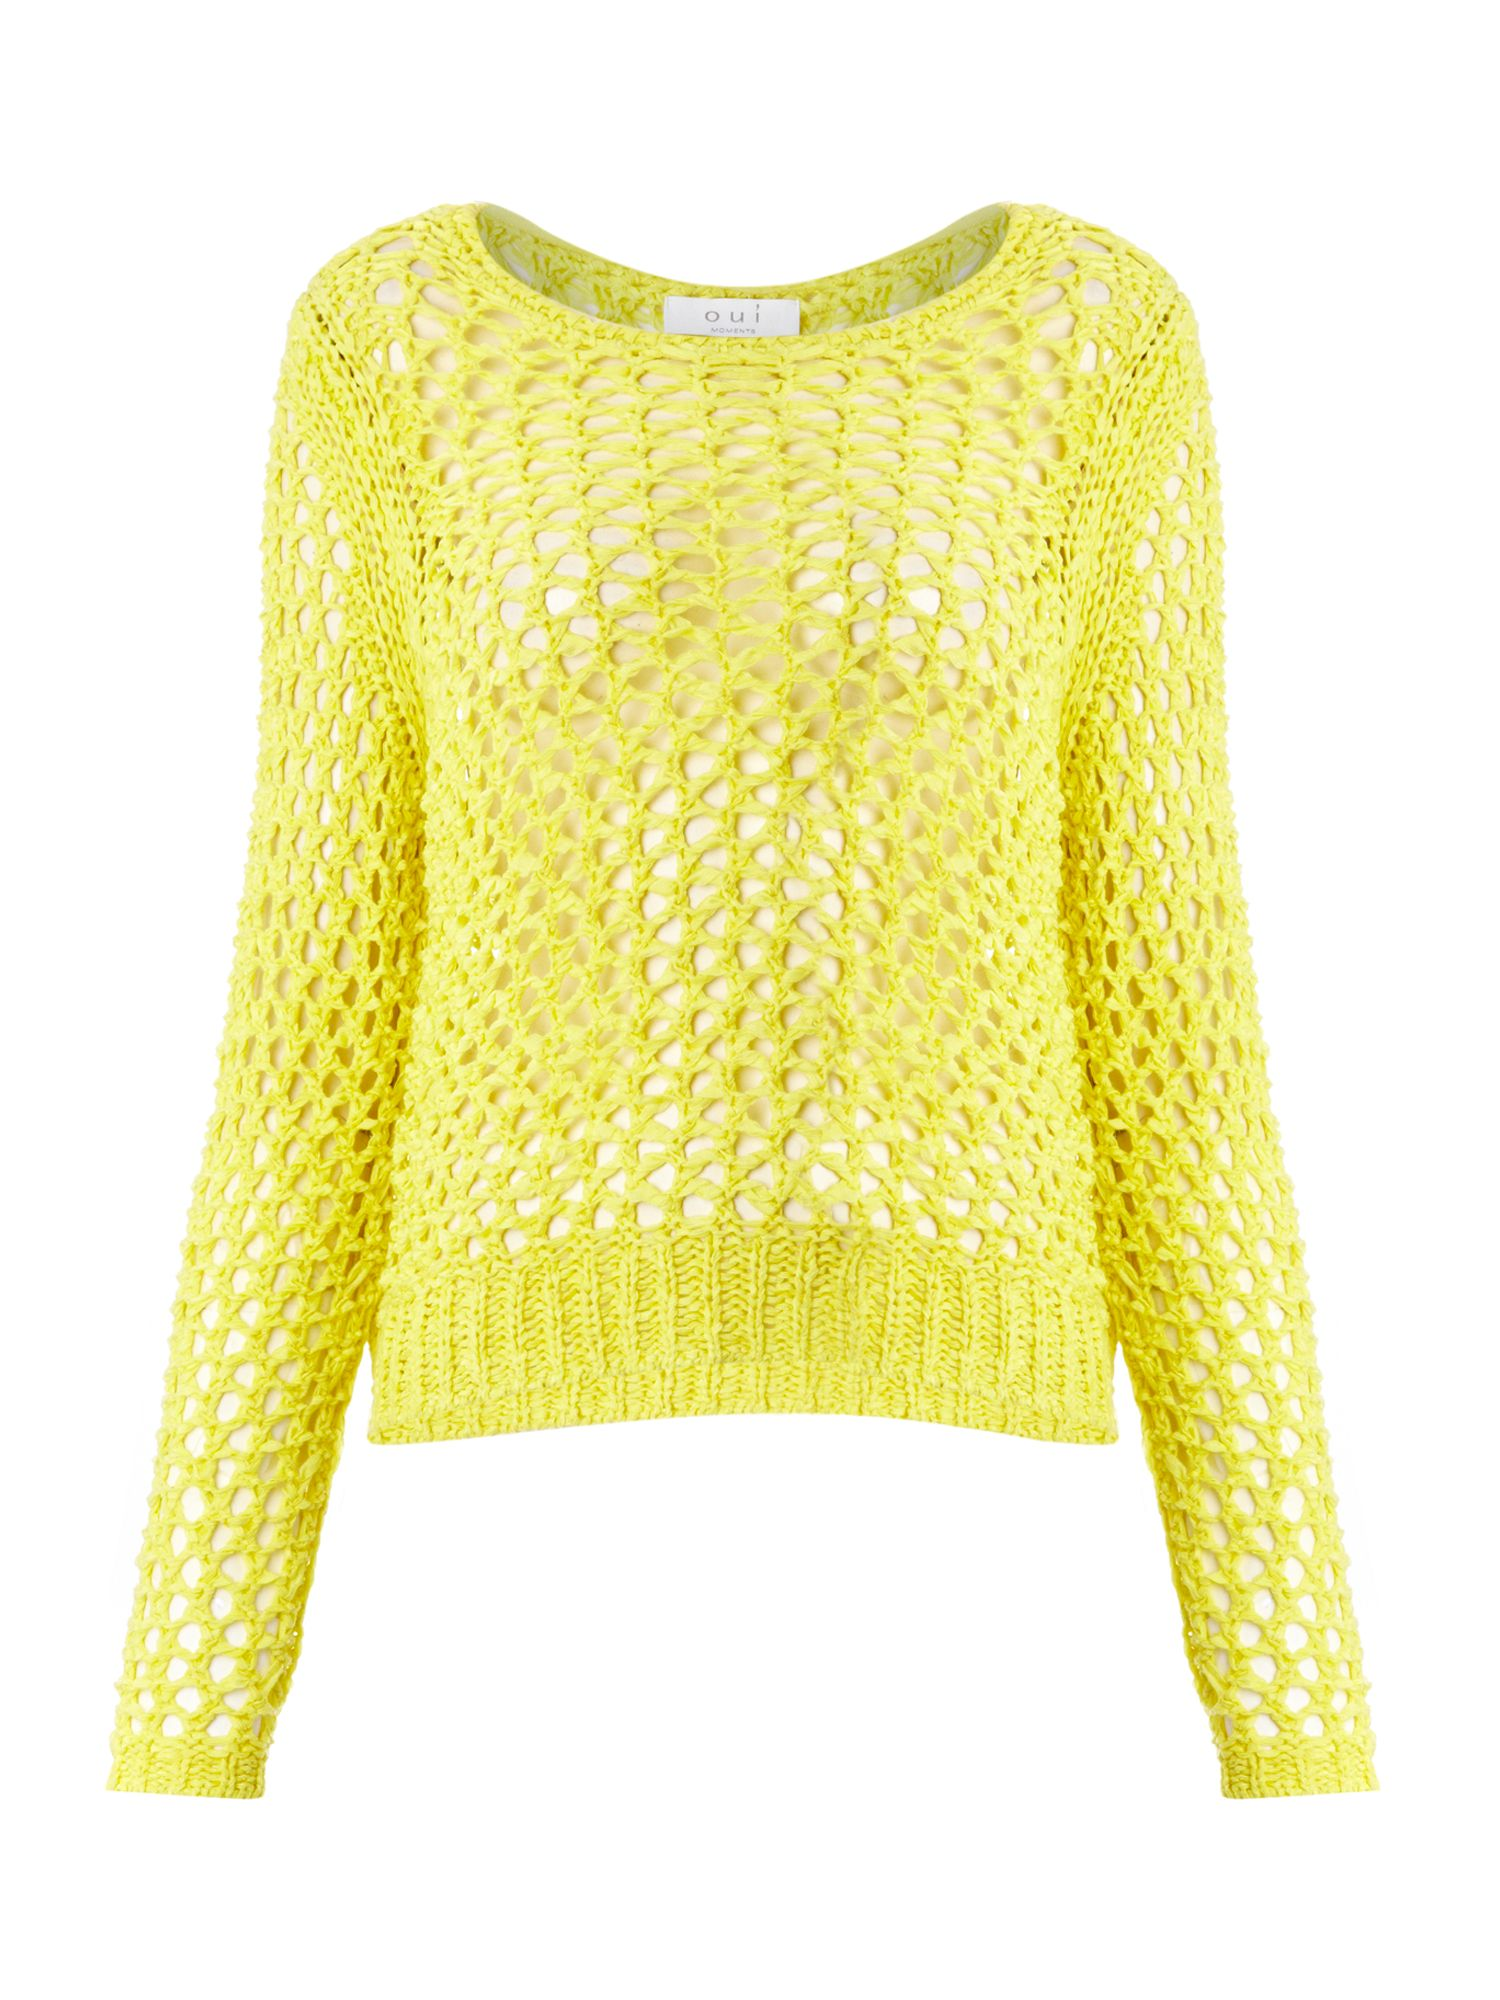 Long sleeve crew neck open weave jumper